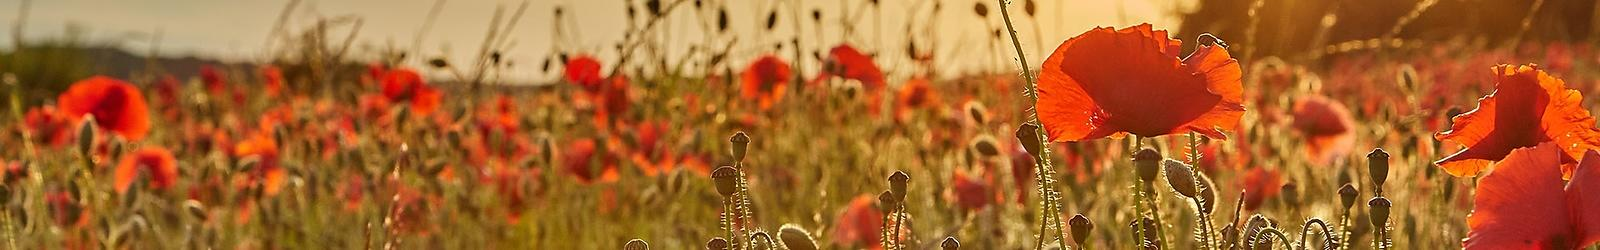 19-06-22_poppy_field_01074_LeeGillion